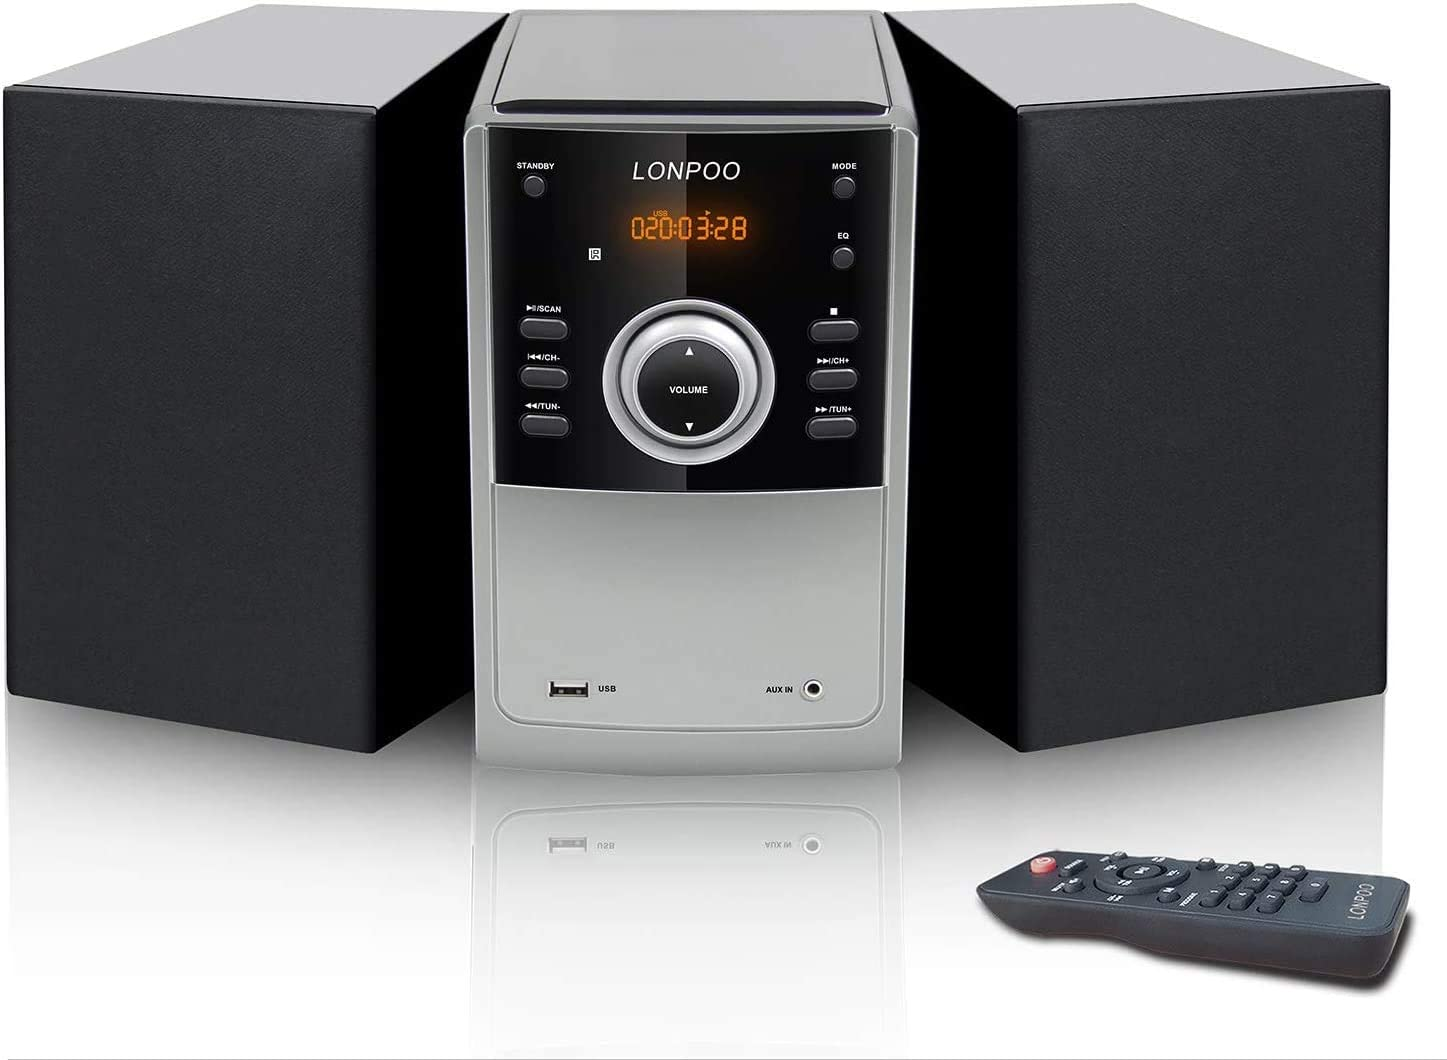 LONPOO Micro CD Player,Home Stereo System 30W Mini Hi-Fi Stereo with Bluetooth, USB, FM Radio, MP3, CD-R/CD-RW, Aux, CD Playback, Remote Control, Home Audio (Noir)